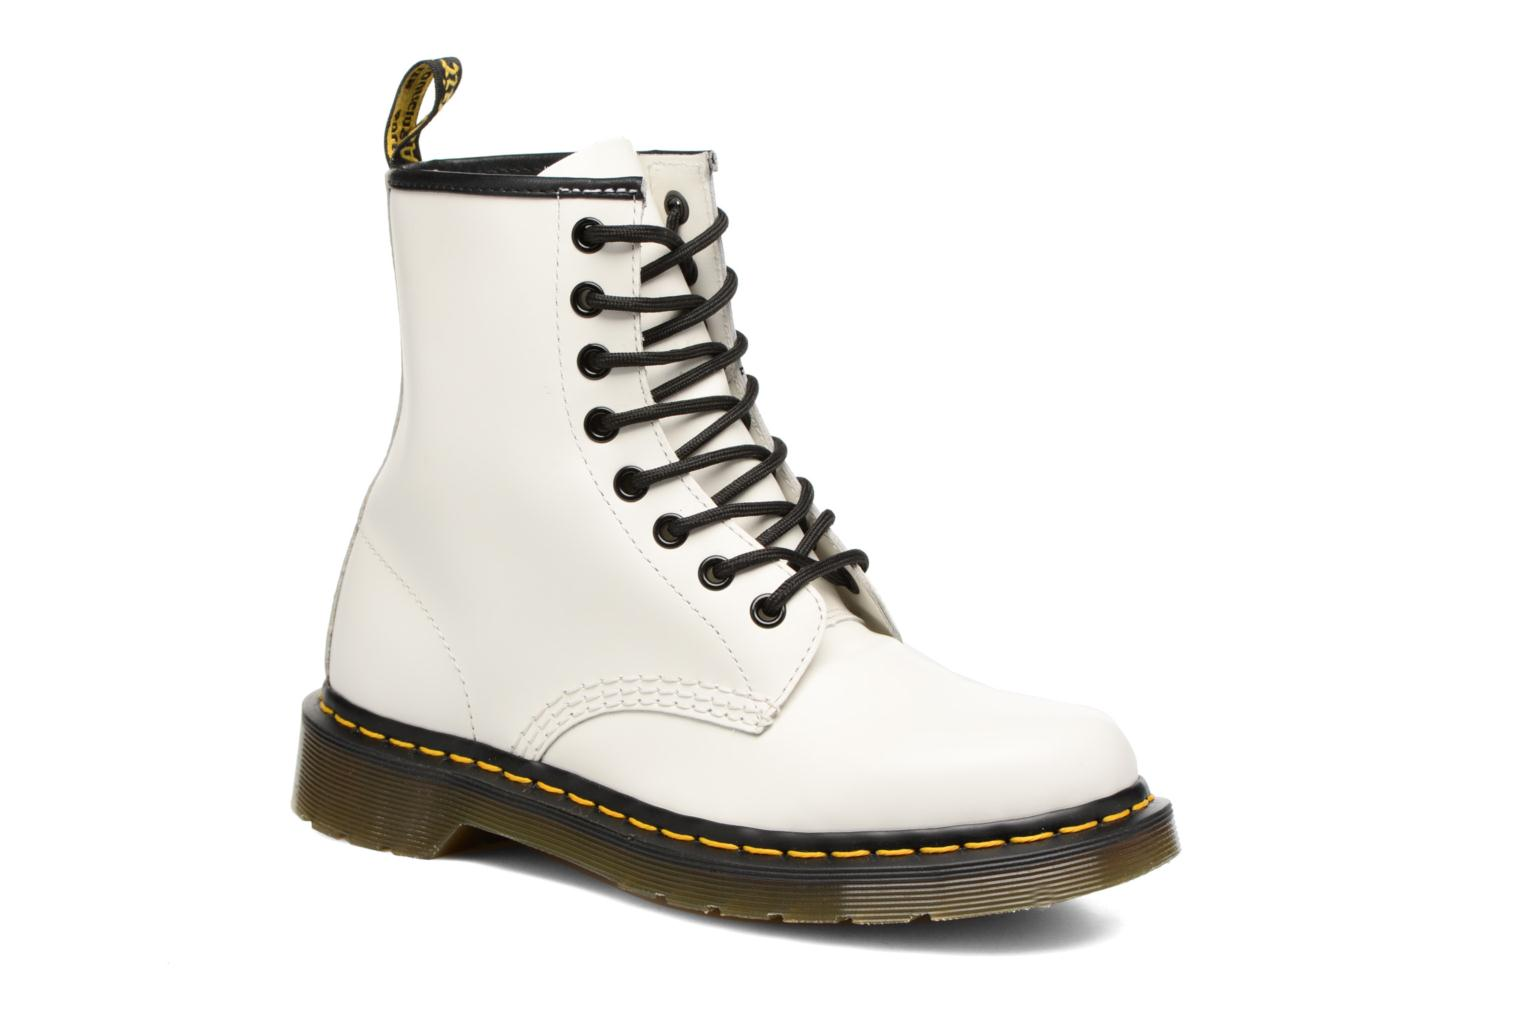 1460 W by Dr. Martens